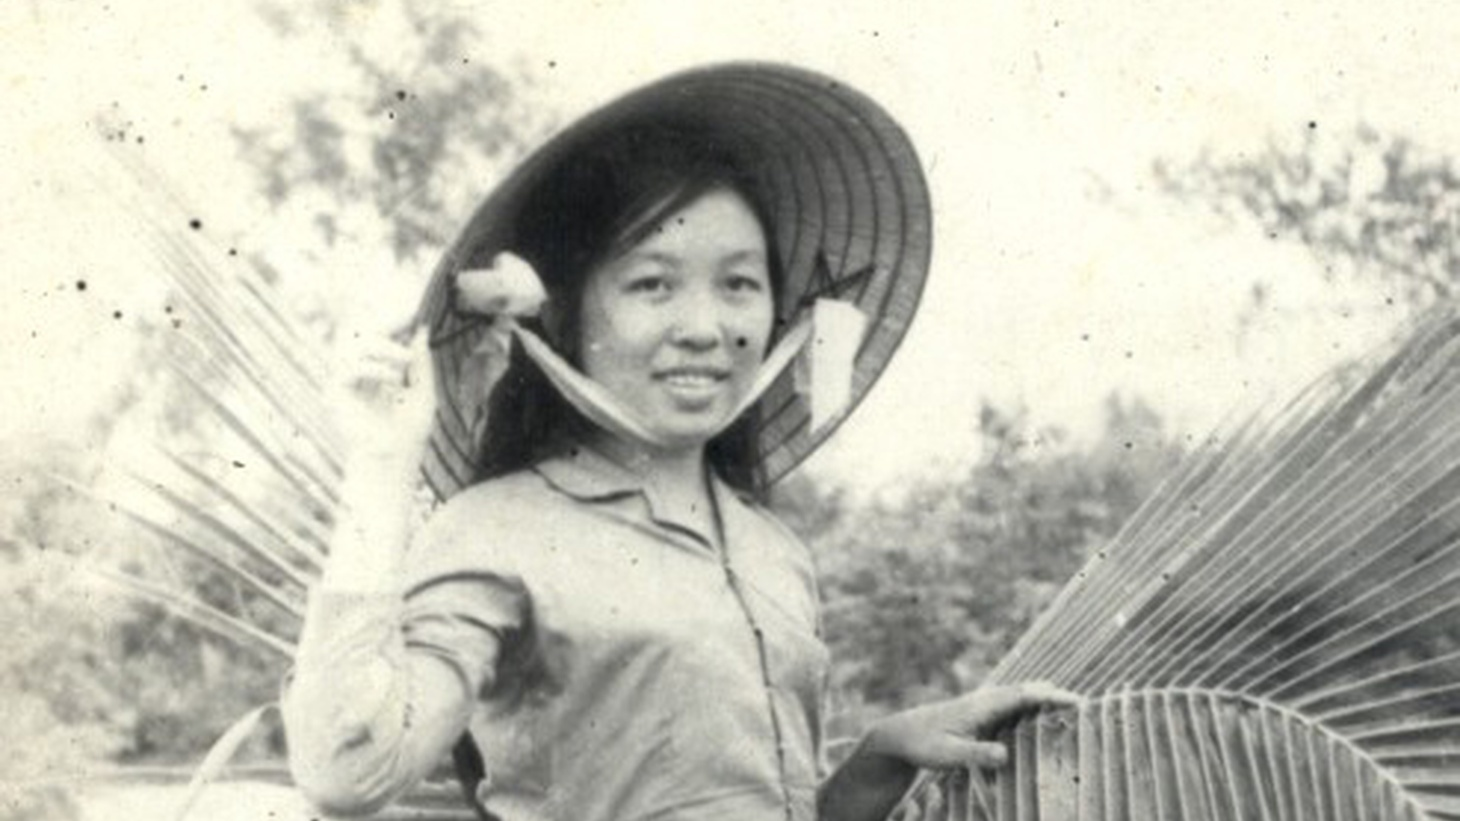 Against orders, Frederick Whitehurst kept the diary of a young North Vietnamese doctor. It took 30 years for her words to be heard.